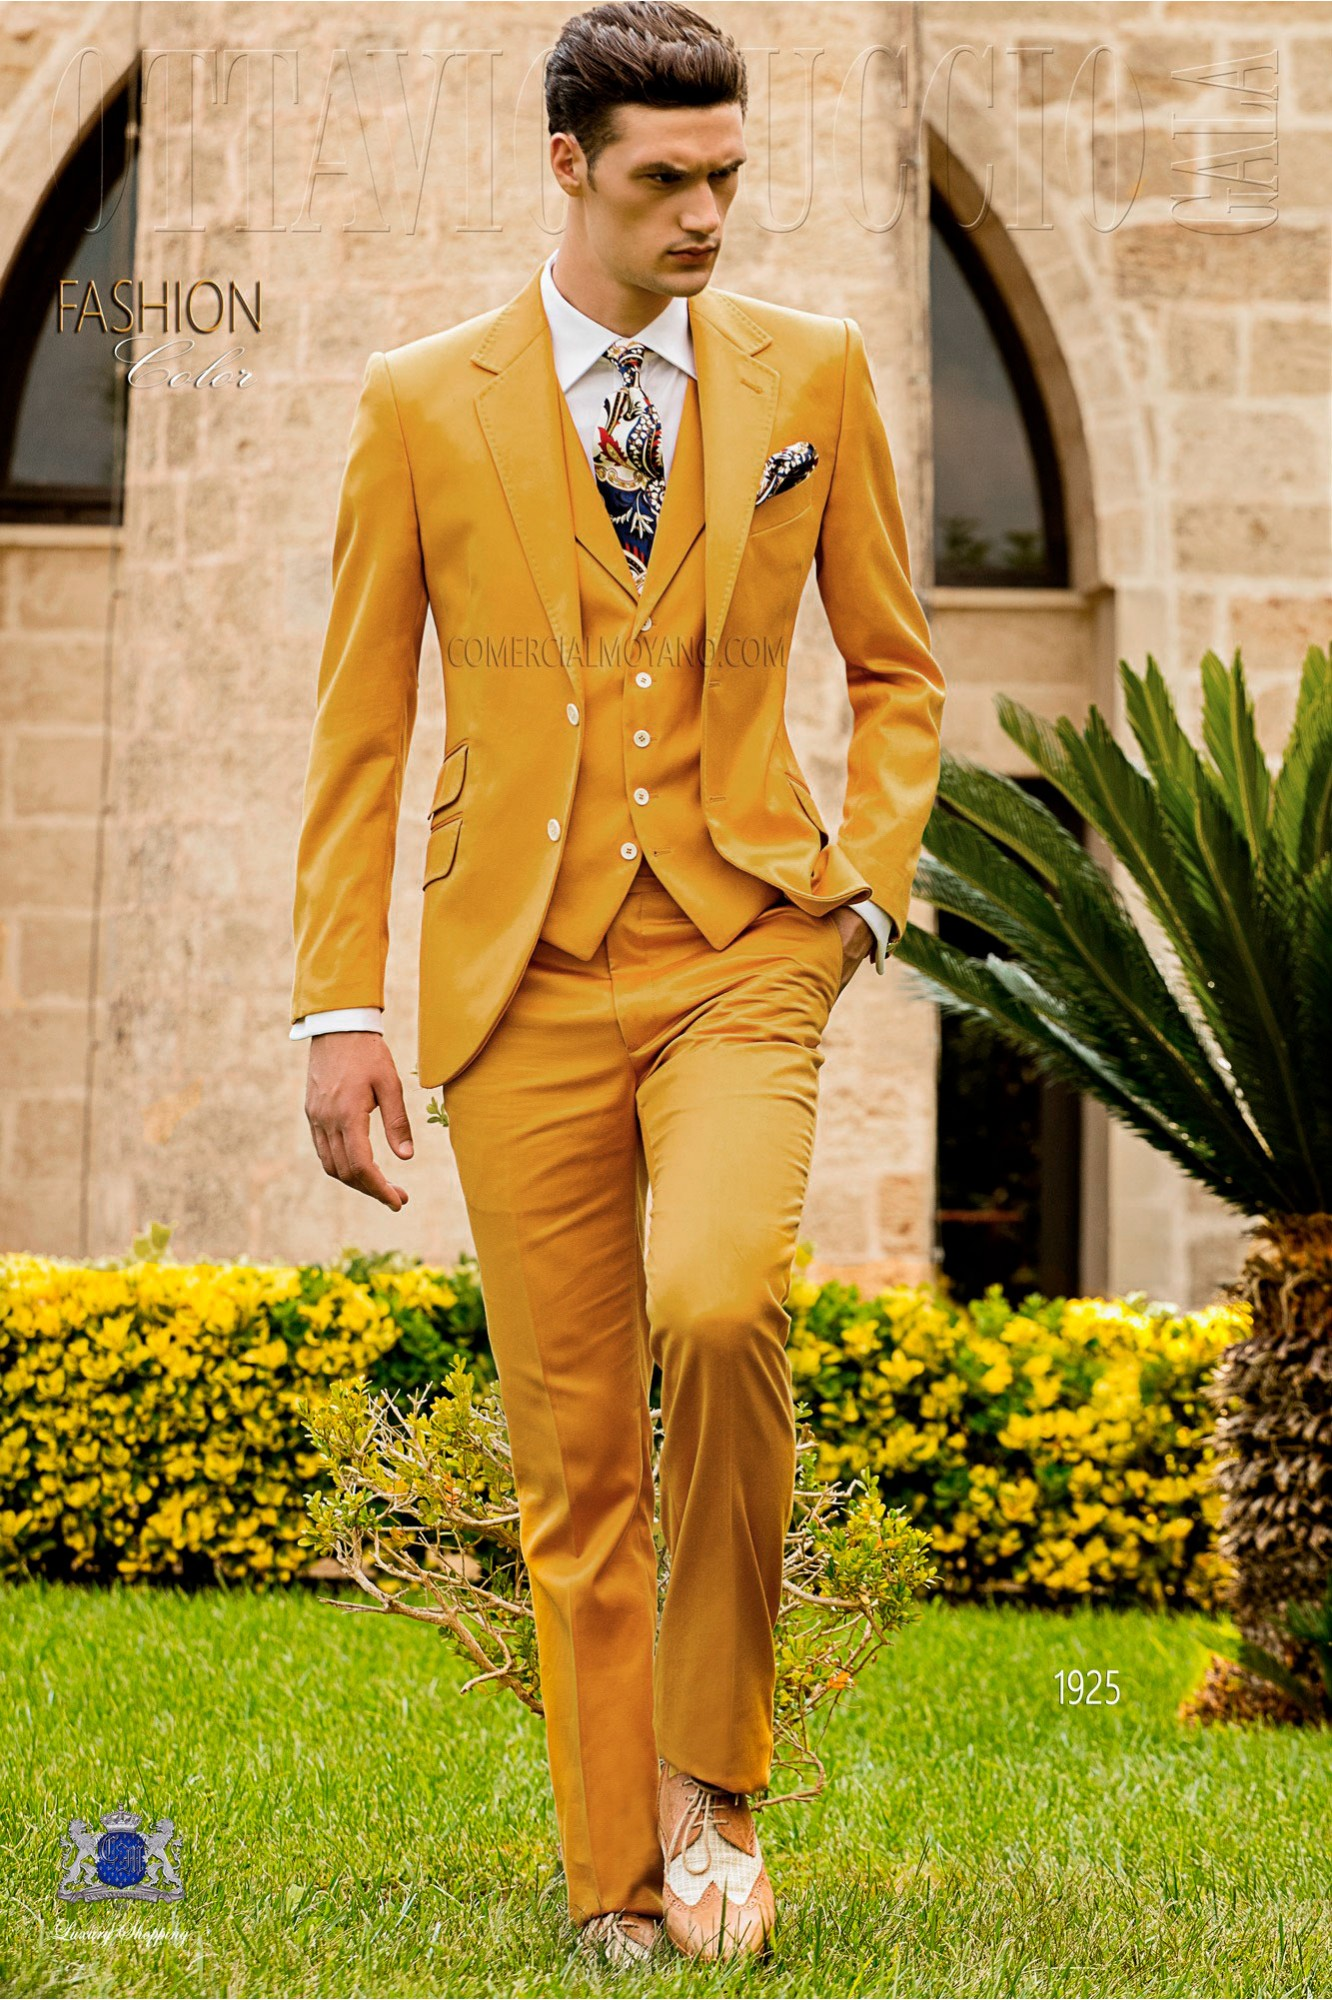 Italian stitched bespoke pure cotton yellow suit model 1925 Ottavio Nuccio Gala